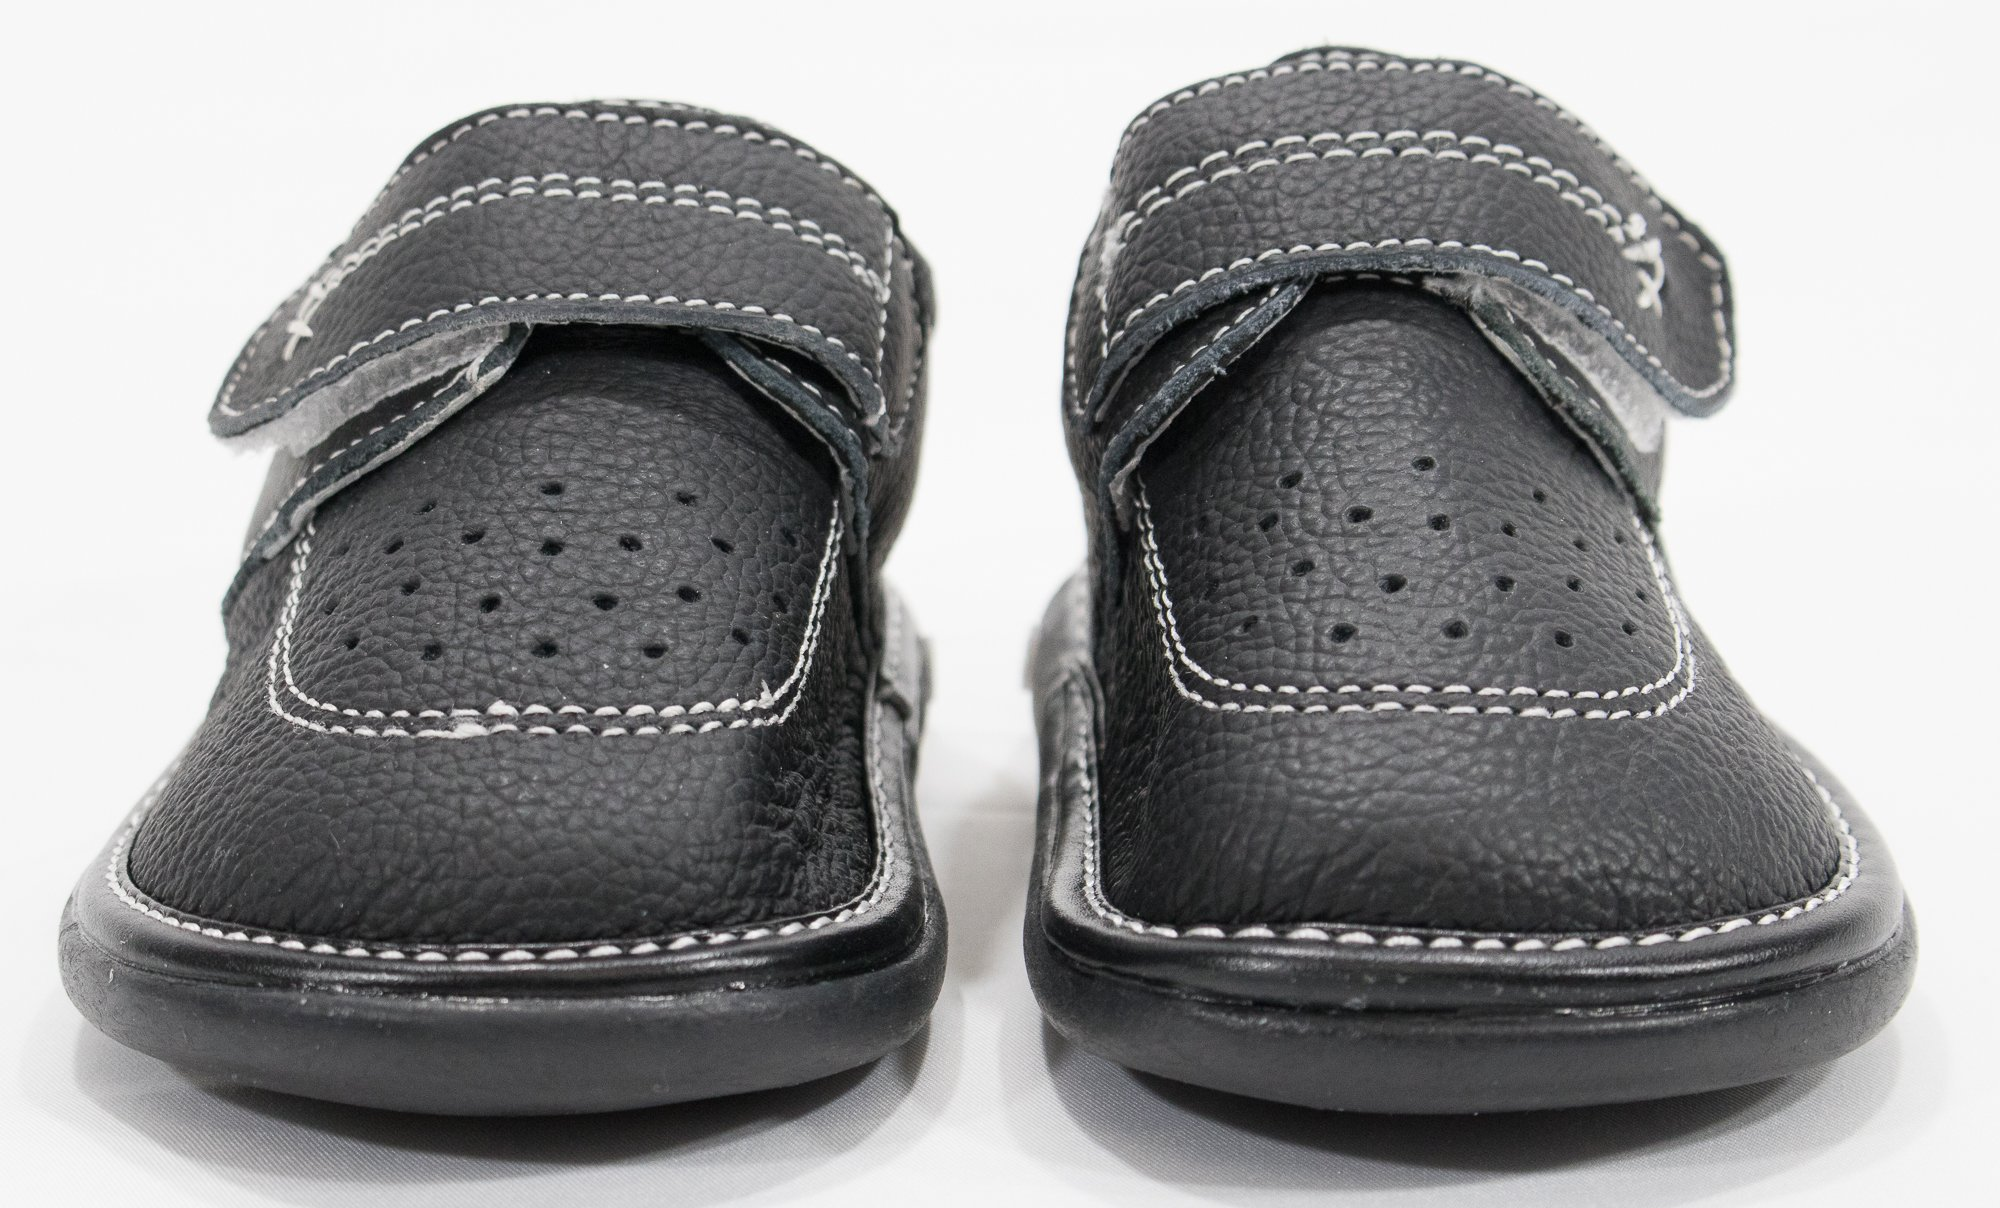 Anderson Baby Care LLC Squeaky Shoes for Toddler Boys (4T, Black Loafer) by Anderson Baby Care LLC (Image #2)